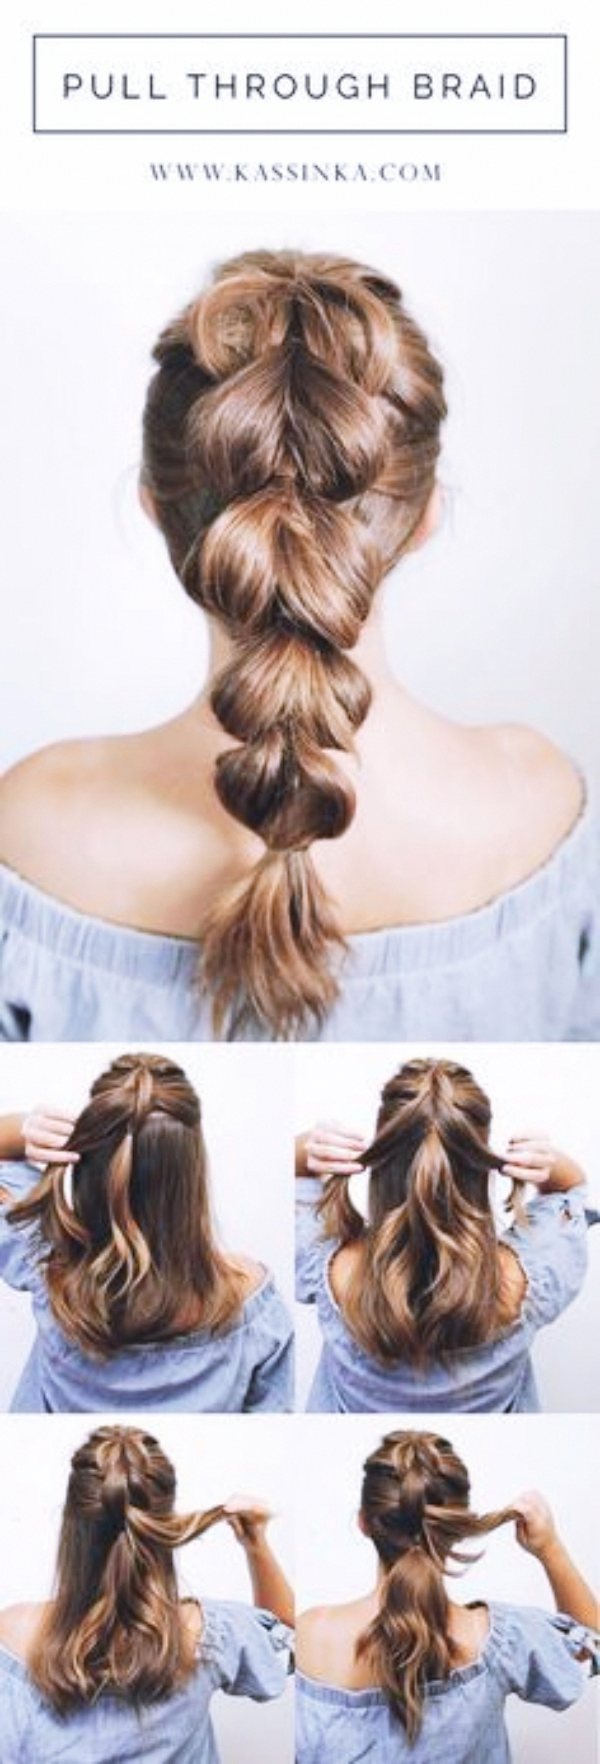 45 Quick and Easy Updo Tutorials for Medium Hair #updotutorial